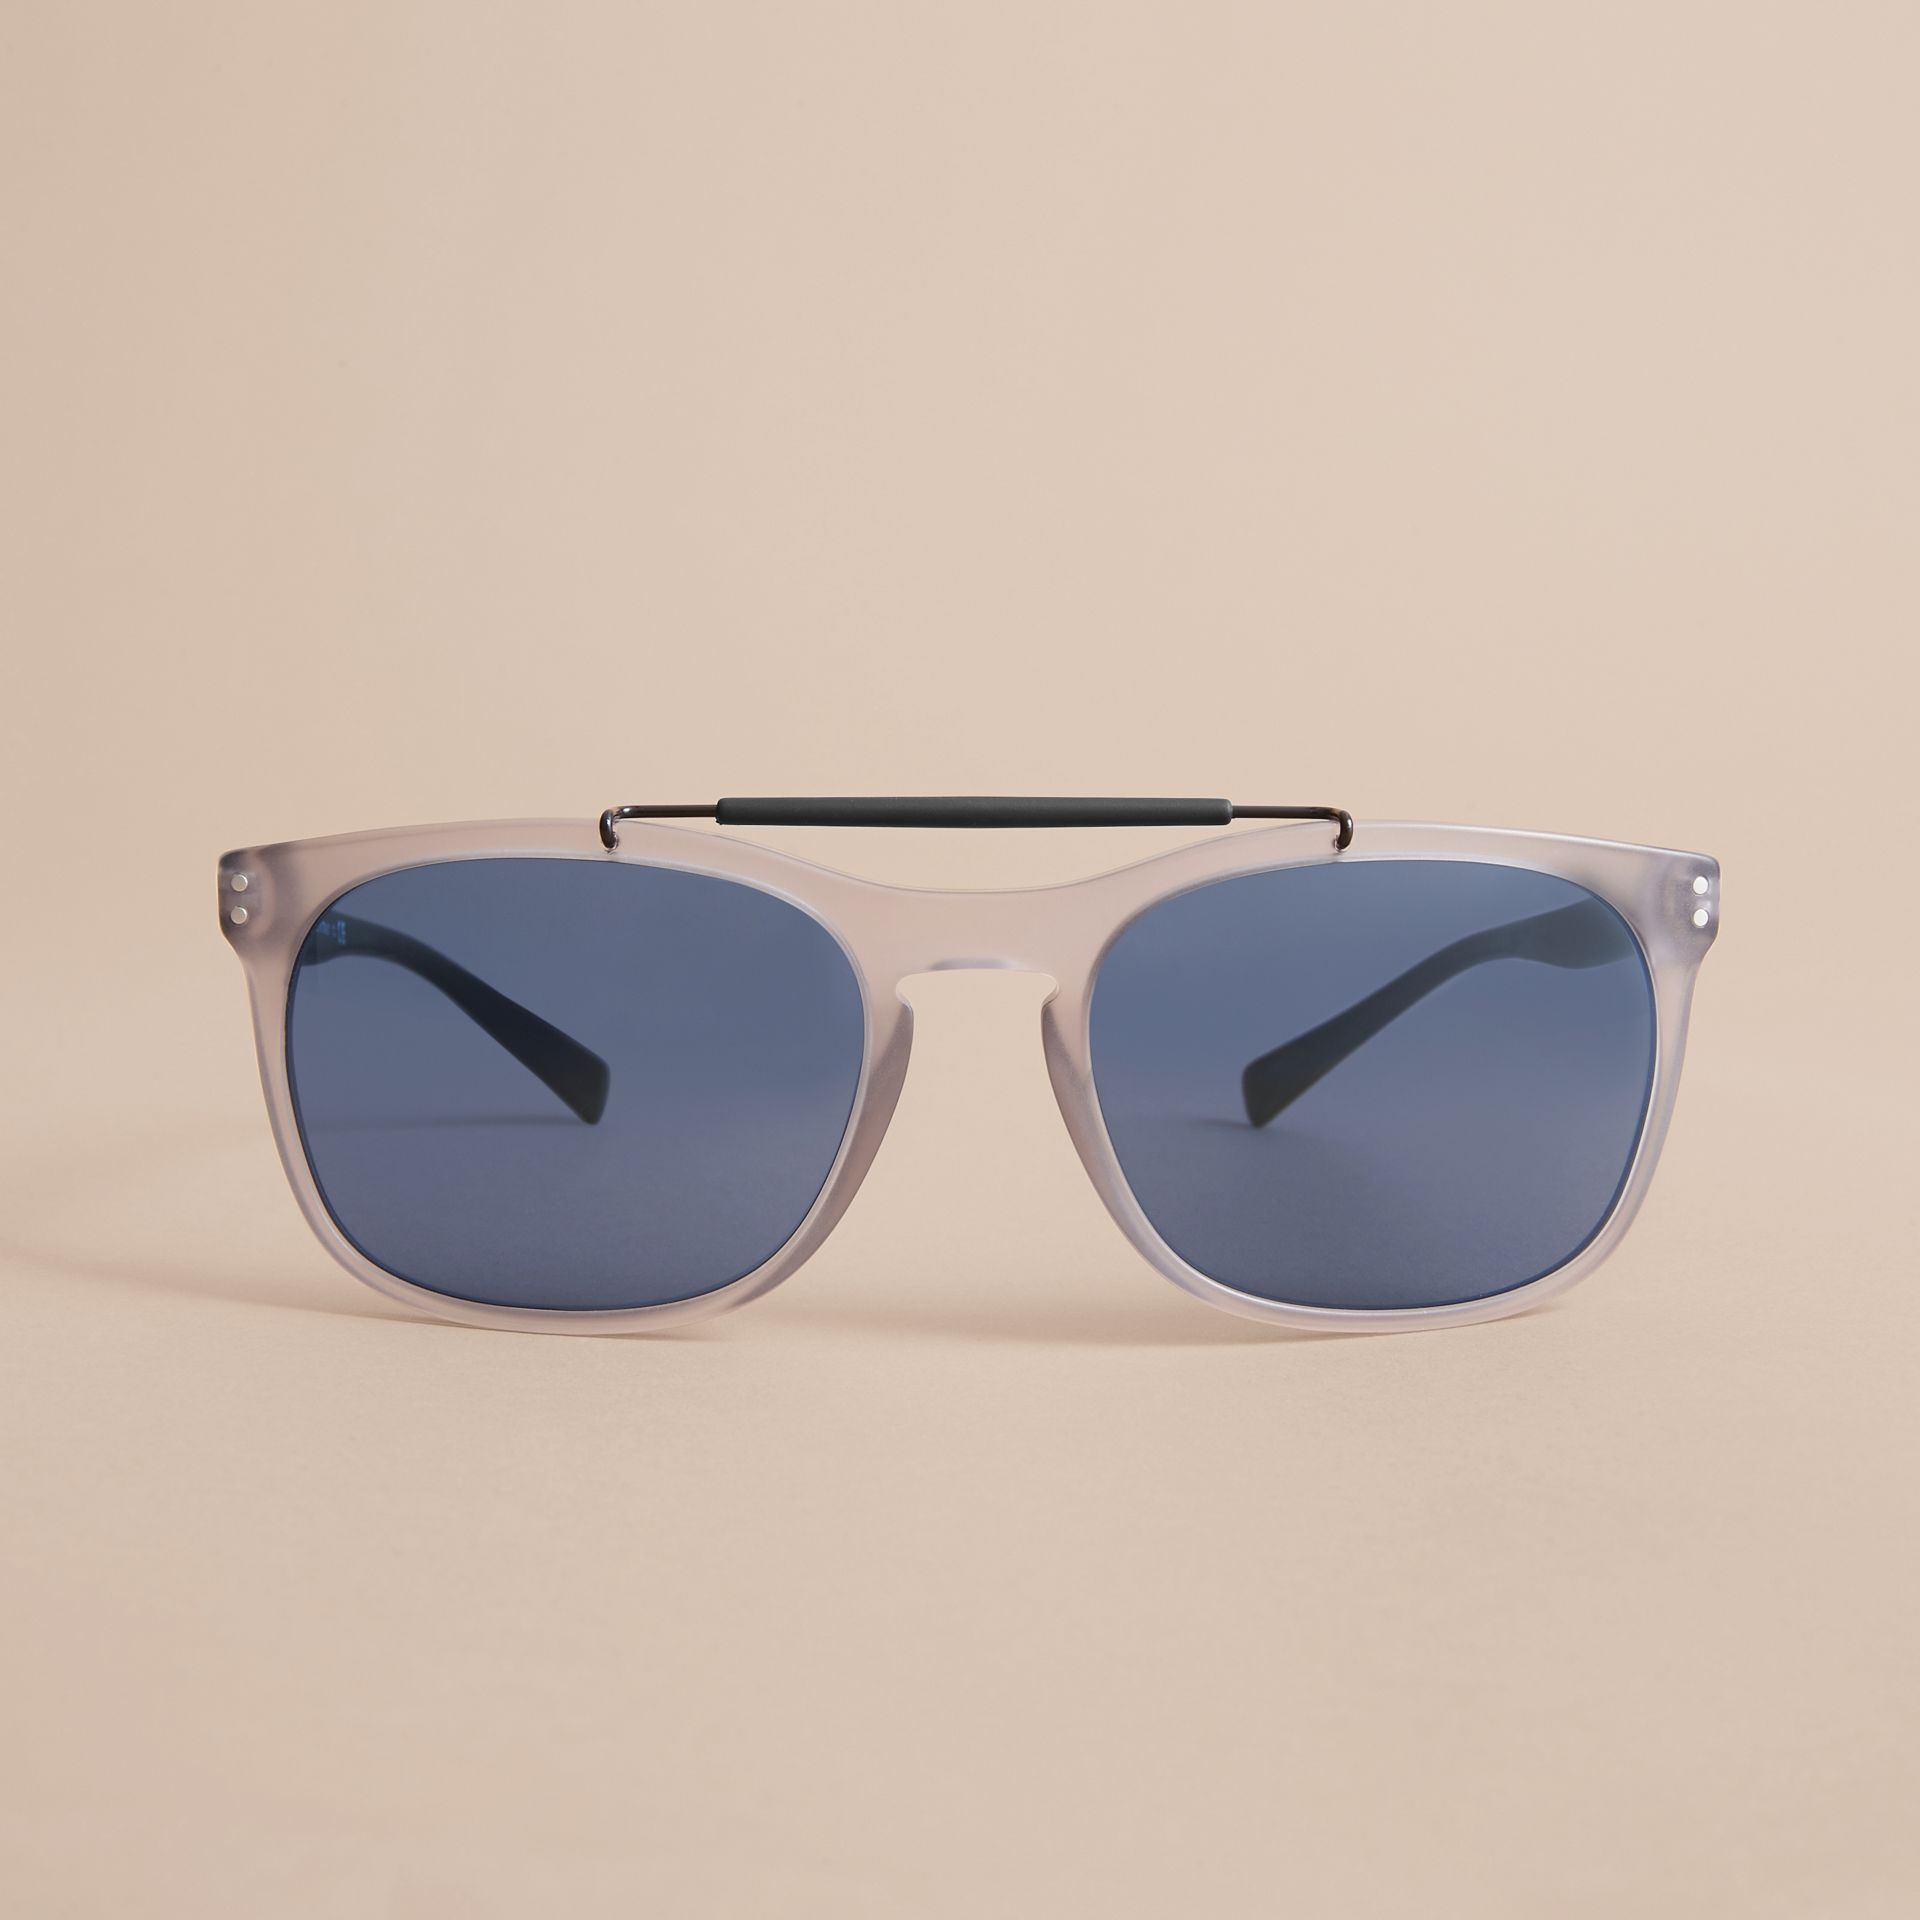 Top Bar Square Frame Sunglasses in Mineral Grey - Men | Burberry - gallery image 2